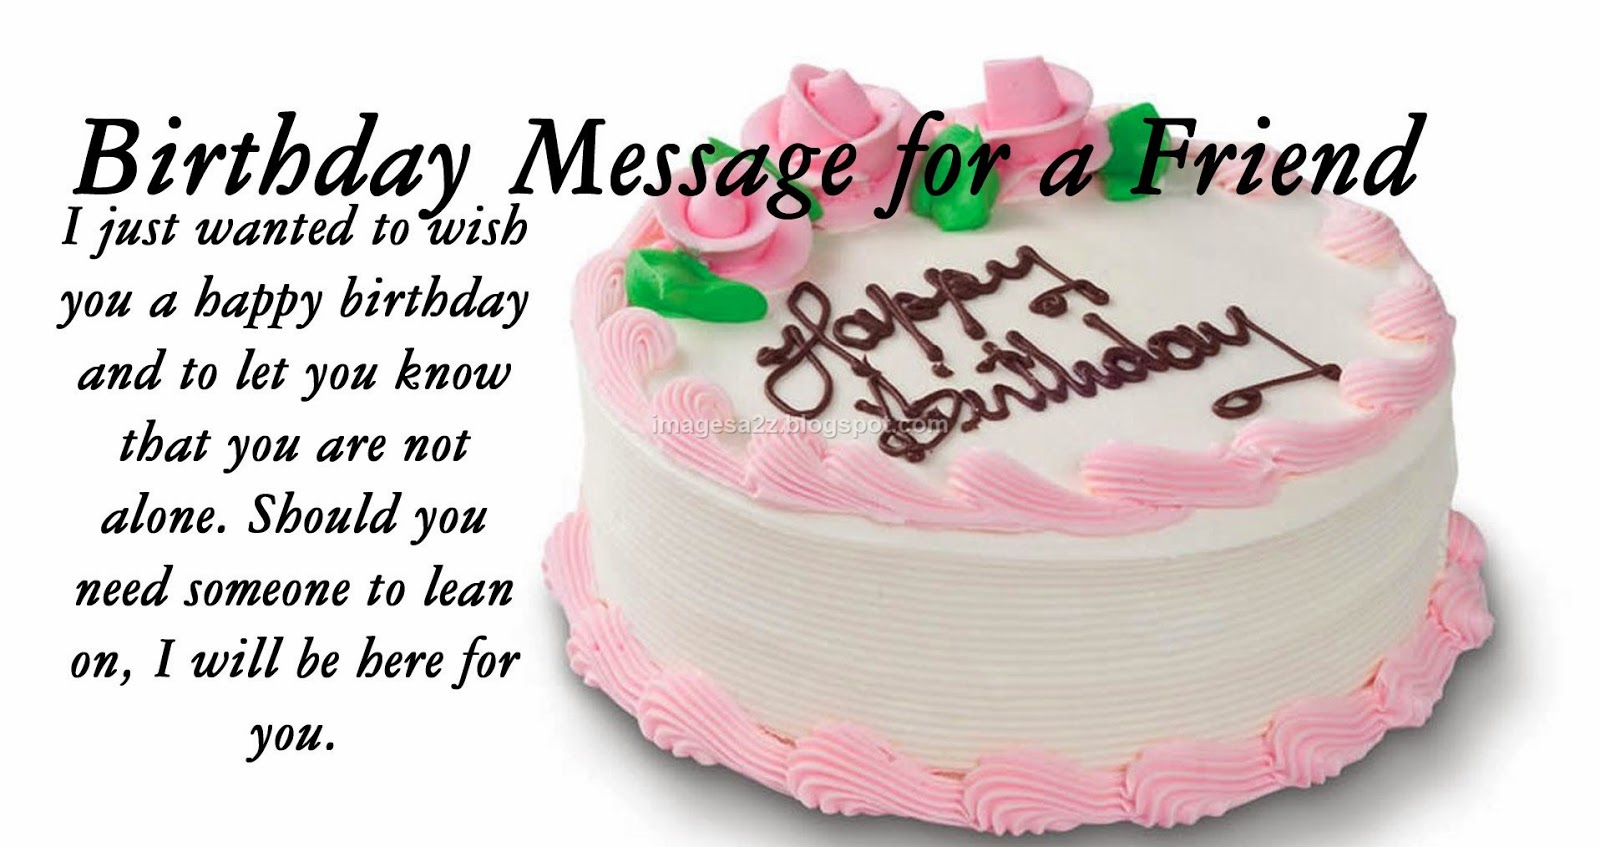 Photos Of Birthday Cake And Wishes : attractive birthday wishes for friends cake birthday ...